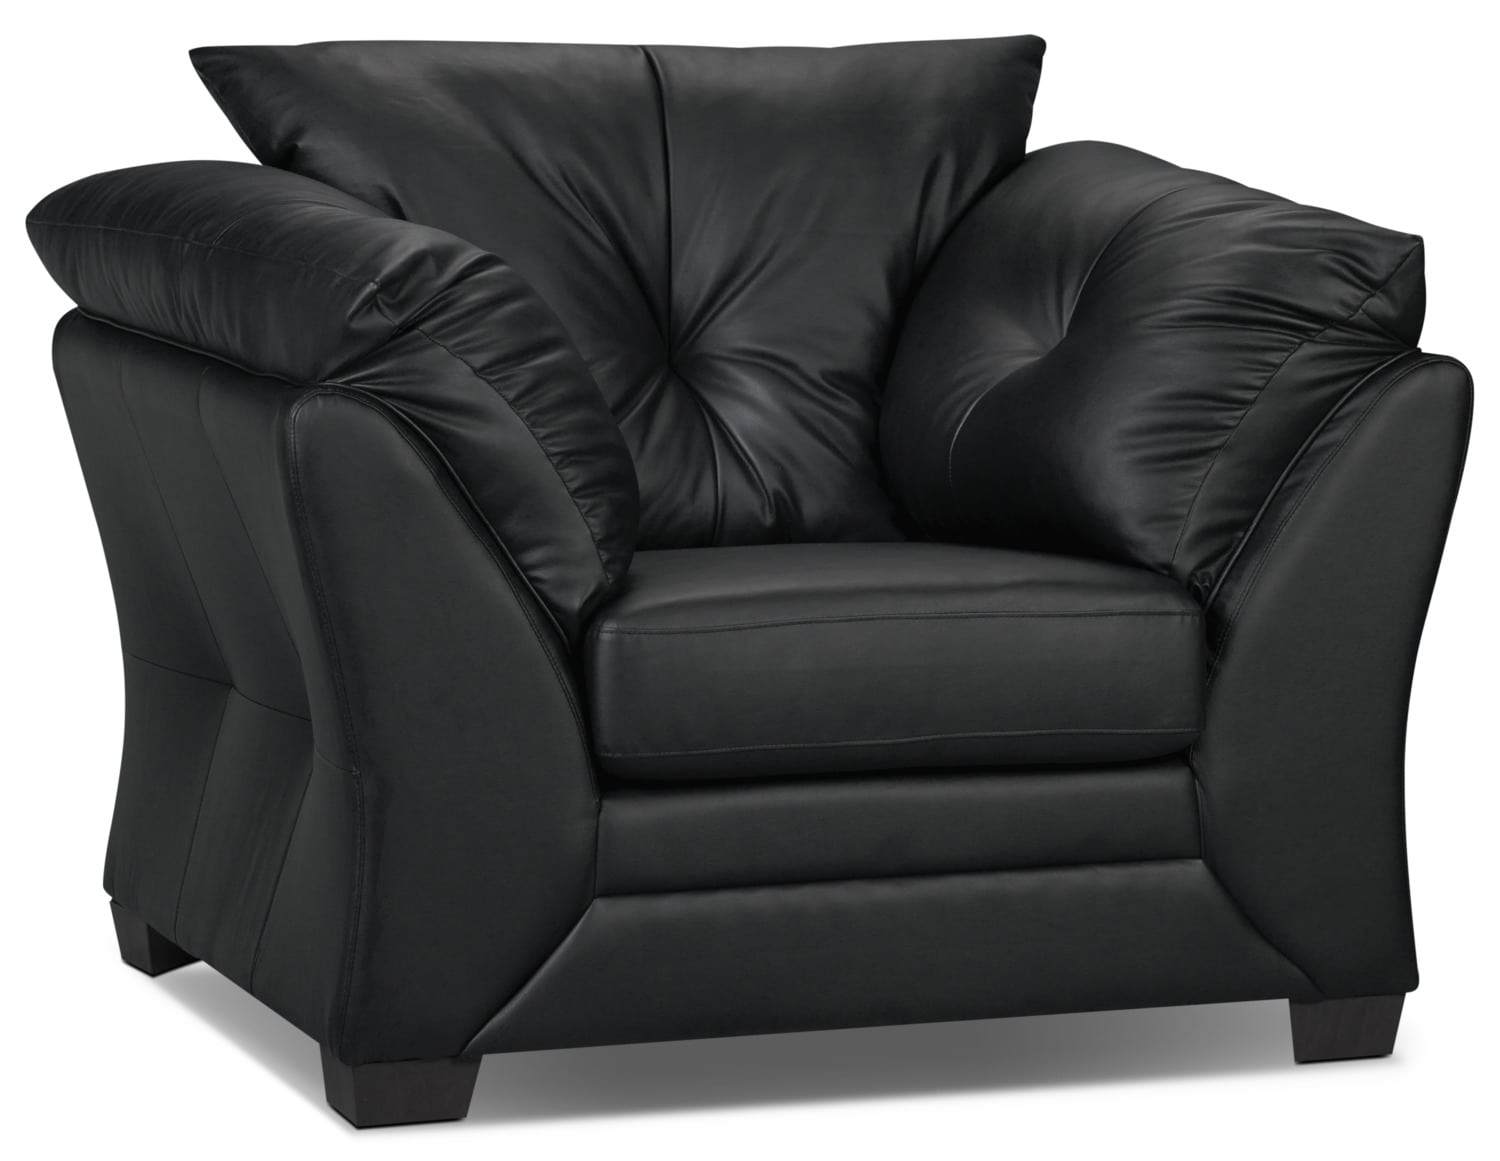 Black Faux Leather Chair: Max Faux Leather Chair - Black